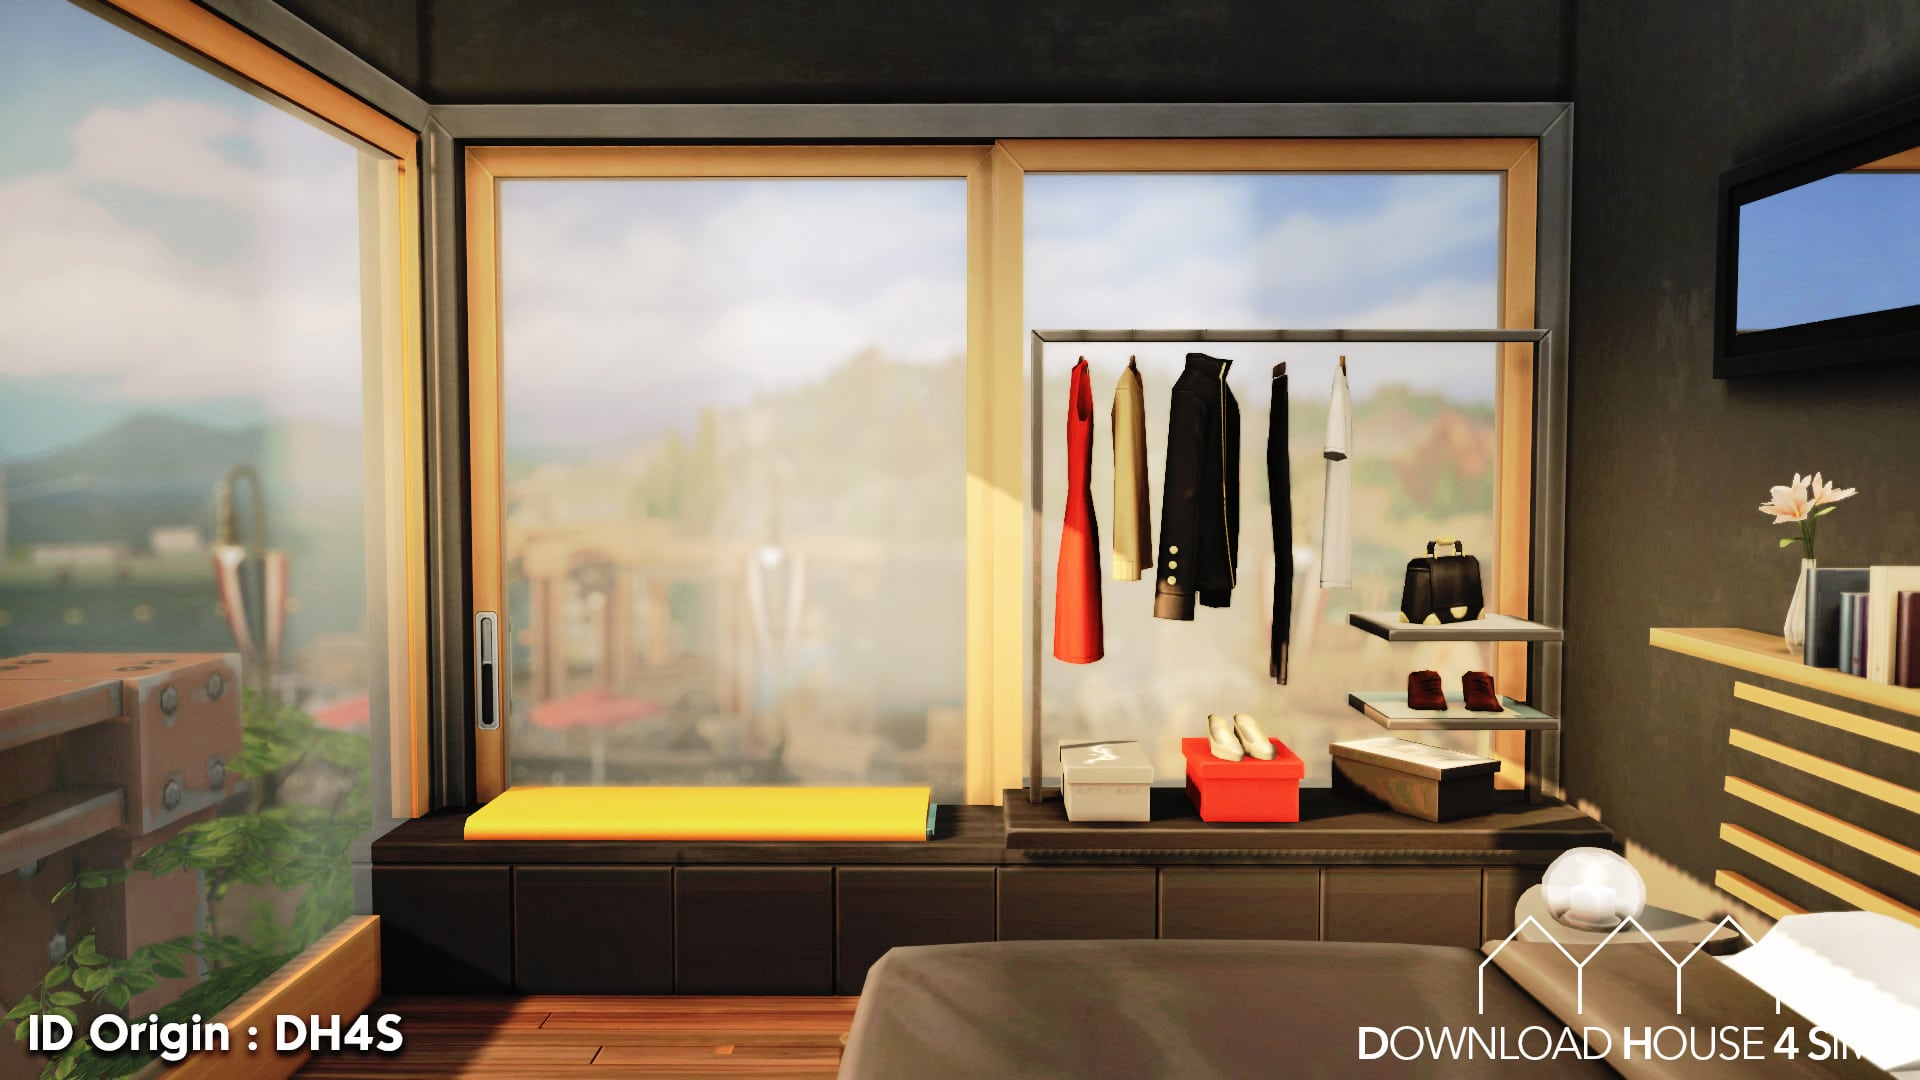 DH4S-Download-house-for-sims-dock-container-eco-house-22